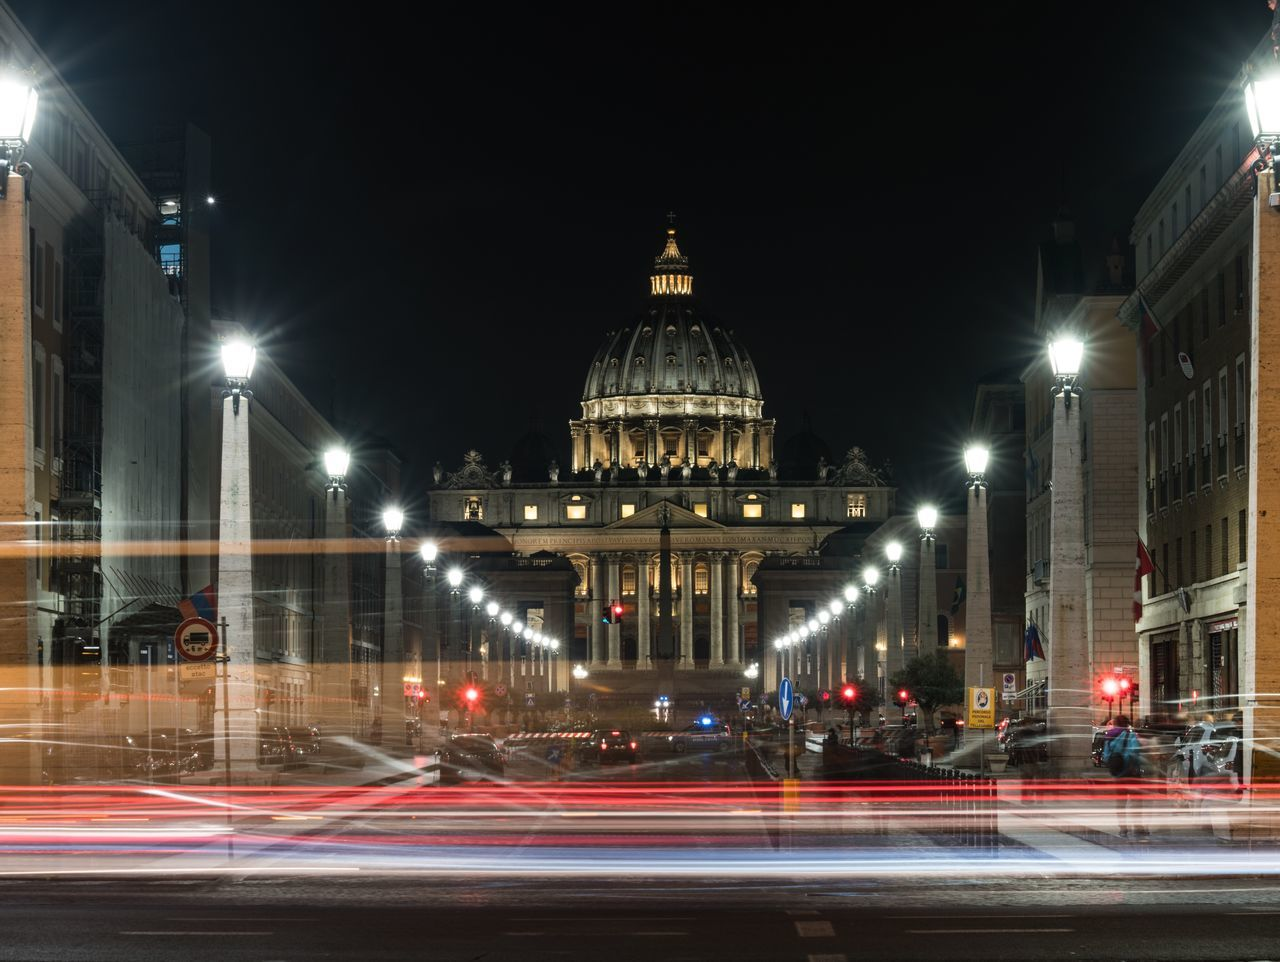 Religion in Motion. Night Architecture Illuminated Dome Building Exterior City Built Structure Speed Travel Destinations Motion Road Outdoors Night Photography Night Lights Slow Shutter Long Exposure Italia Italy❤️ Bella Italia Italy Rome Roma Rome Italy Europe Vatican